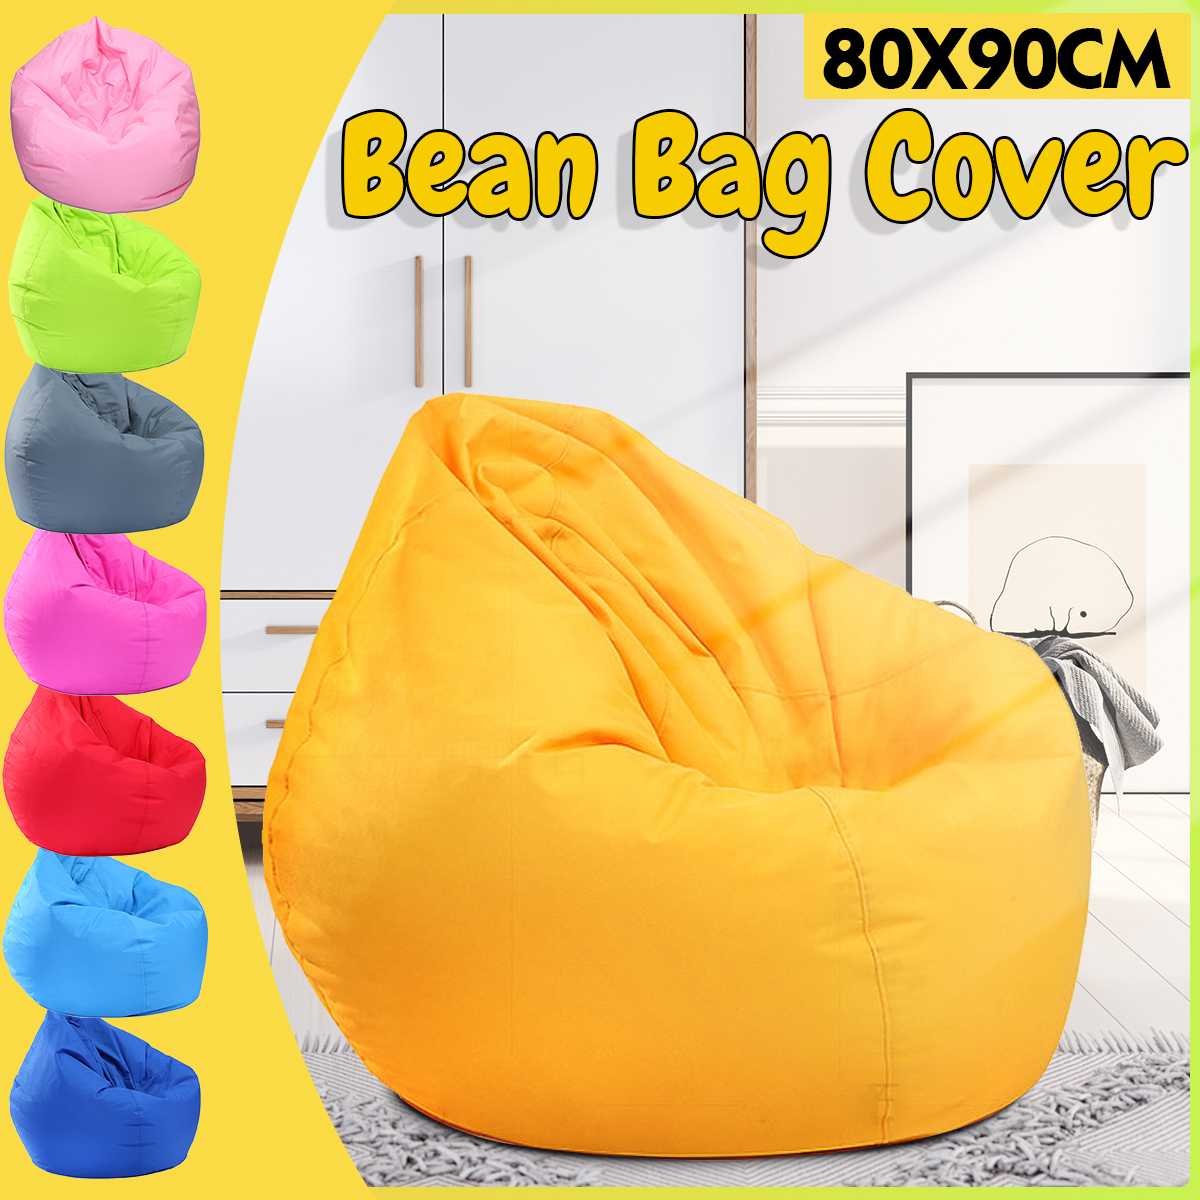 80x90cm New Lazy BeanBag Sofas Cover Chairs Without Filler Linen Cloth Lounger Seat Bean Bag Pouf Puff Couch Tatami Living Room